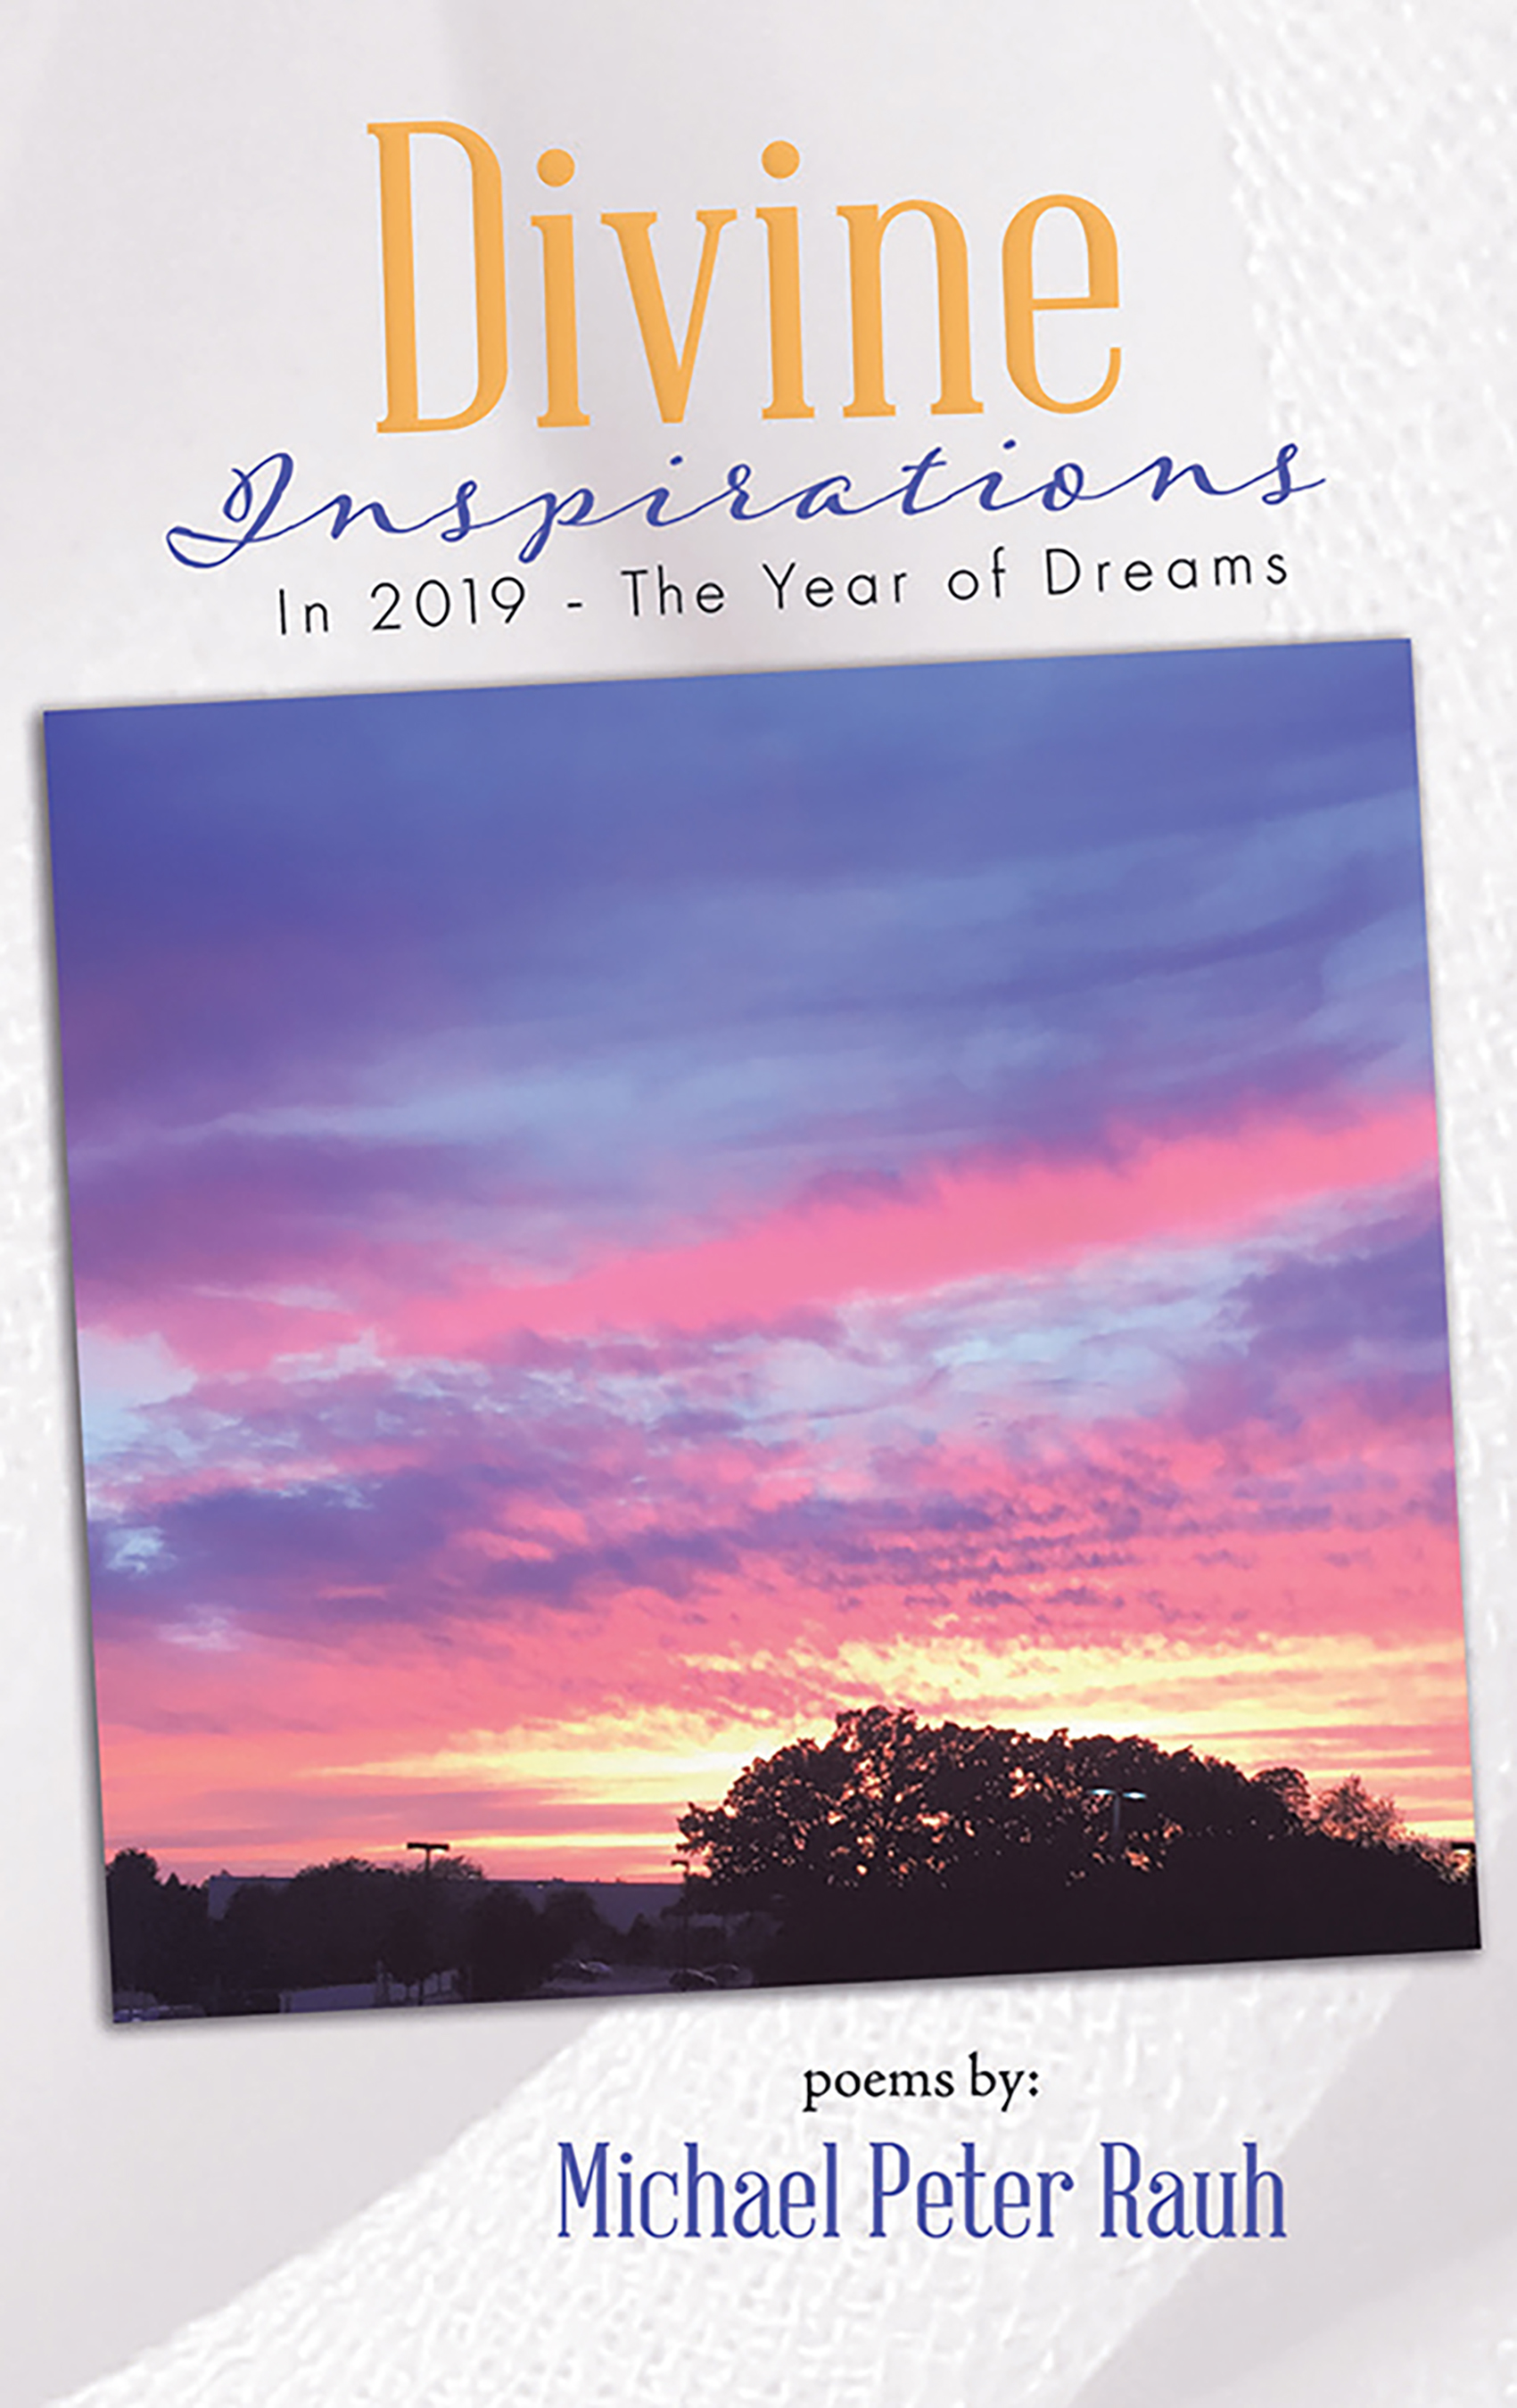 Divine Inspirations in 2019 - the Year of Dreams, an Ebook by Michael Rauh